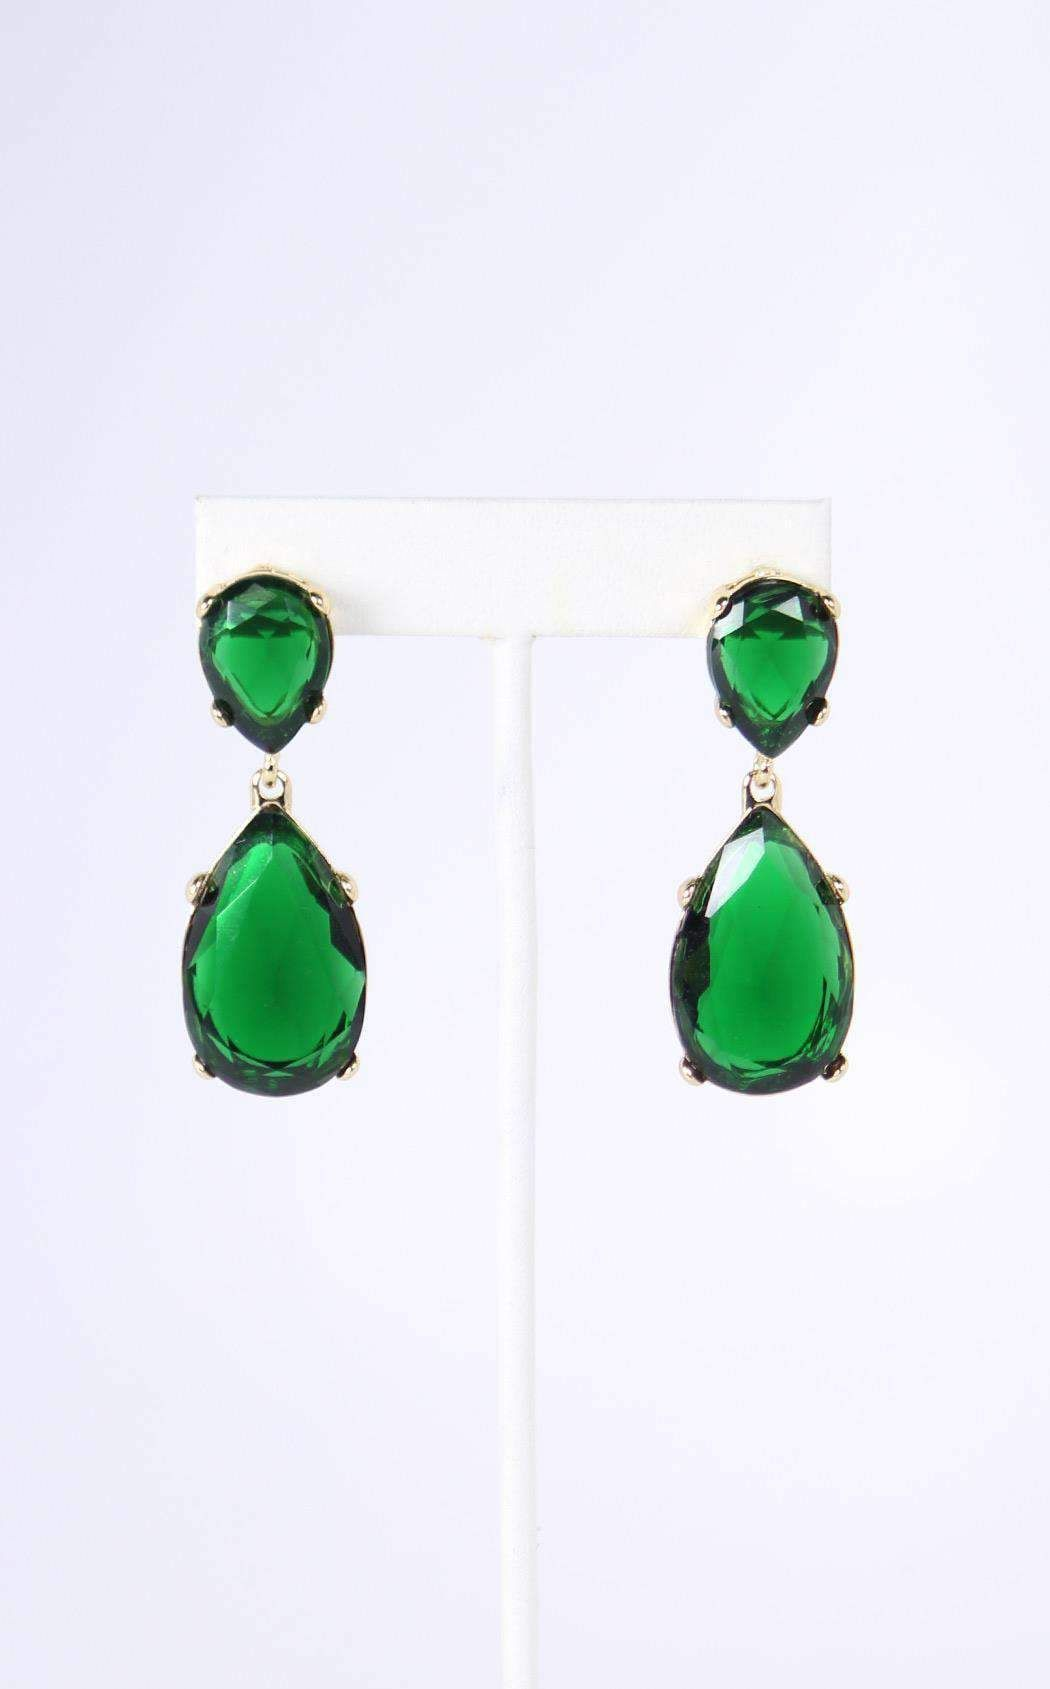 06e438a1b Kenneth Jay Lane - Emerald Teardrop Earring by Thomas Laine | Shades of  Green | Jewelry, Earrings, Kenneth jay lane